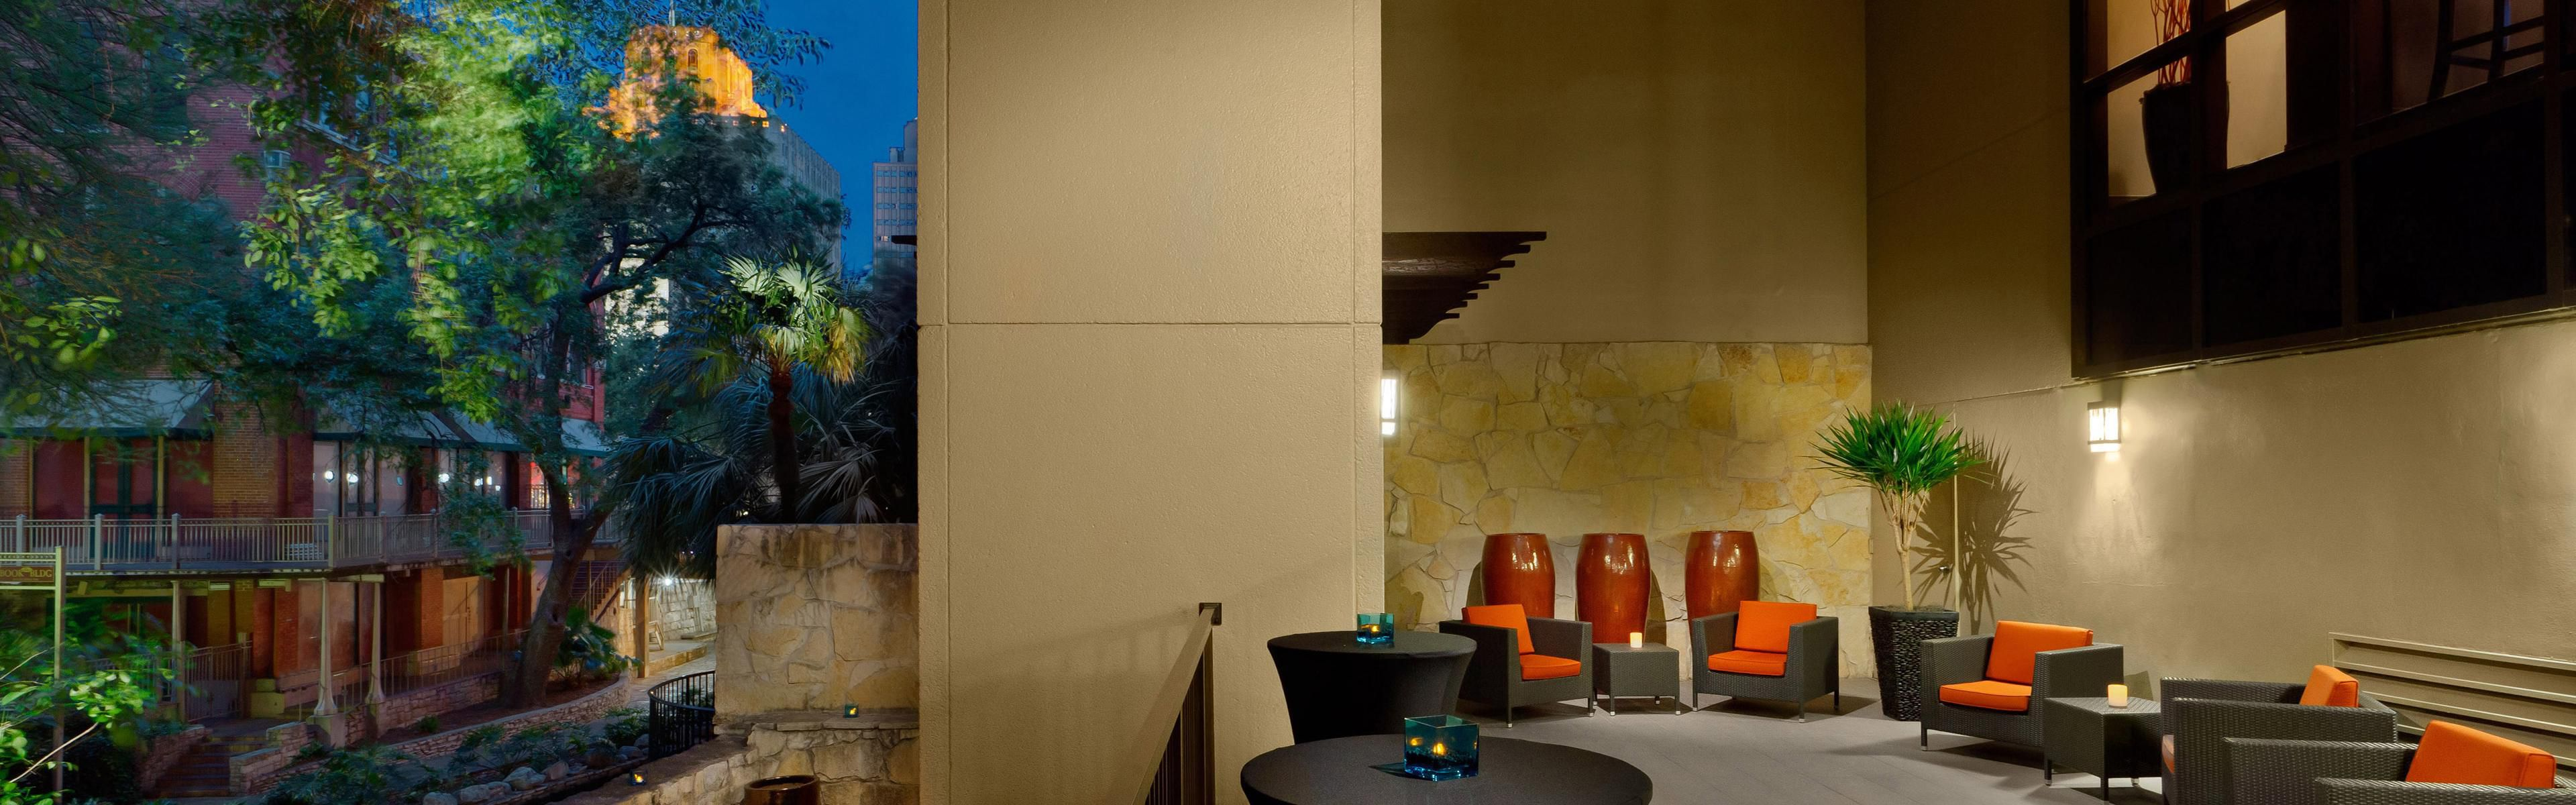 Couchtisch Antonio Holiday Inn San Antonio Hotels | Holiday Inn San Antonio-riverwalk | Amenities